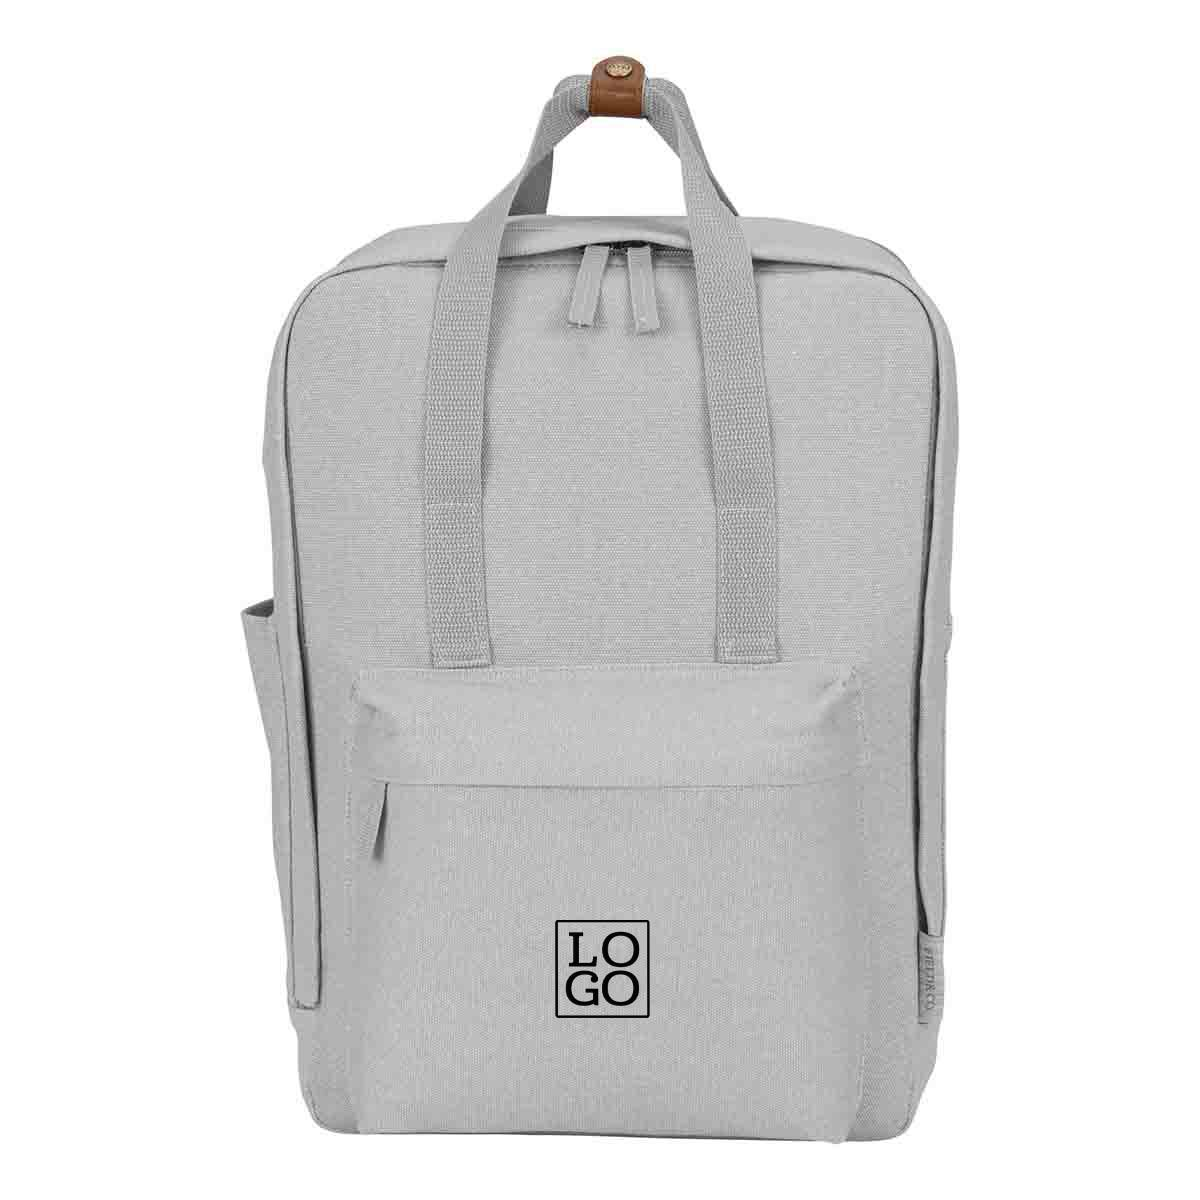 250683 evren backpack one color imprint one location